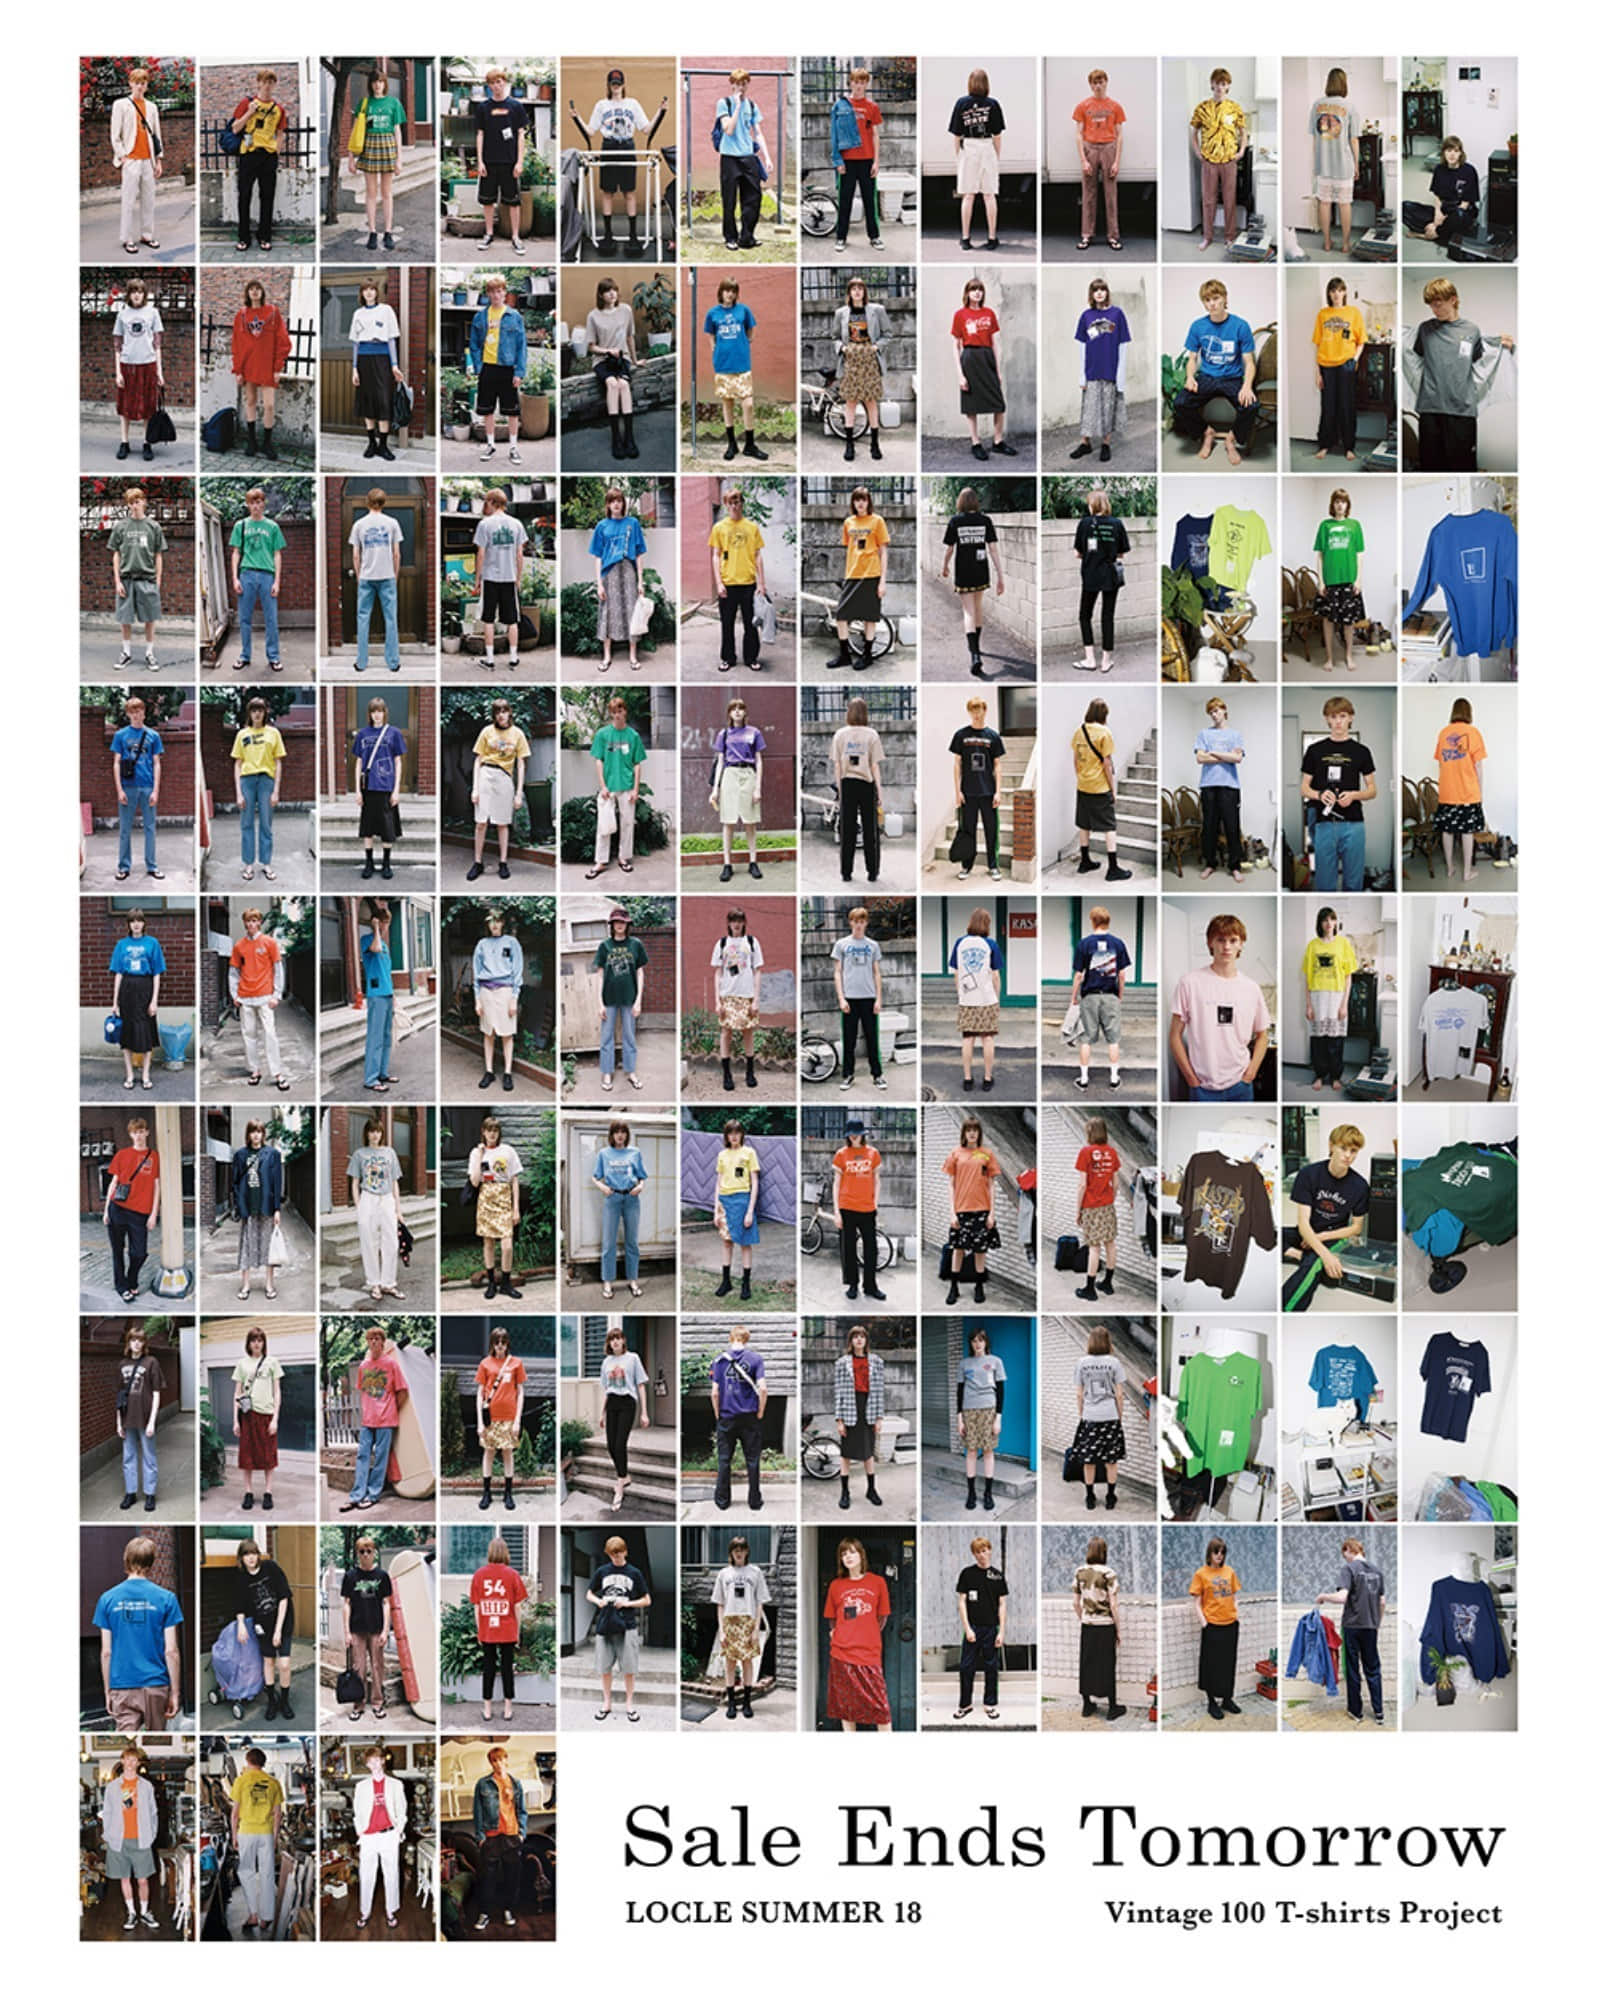 Summer 2018 LOCLE Vintage 100 T-shirts